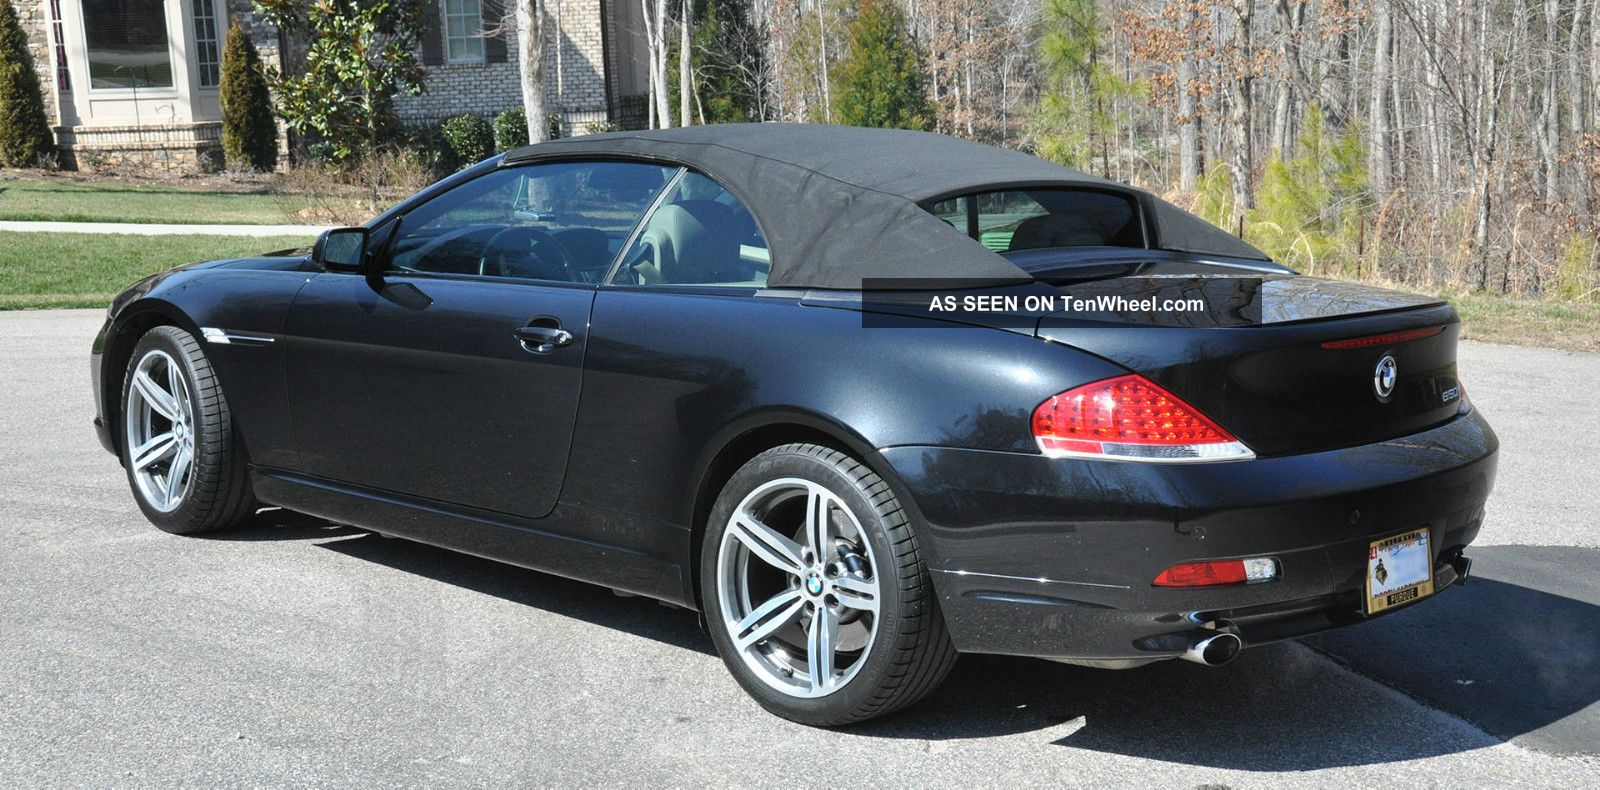 2006 BMW 6 Series Reviews C22266 additionally Bmw Z4 Sdrive35is Roadster 2 together with 2016 Bmw 7 Series Interior further 100604931 2018 Bmw 6 Series 640i Convertible Side Exterior View further 2009 Light car concept. on 2009 bmw 650i convertible reviews